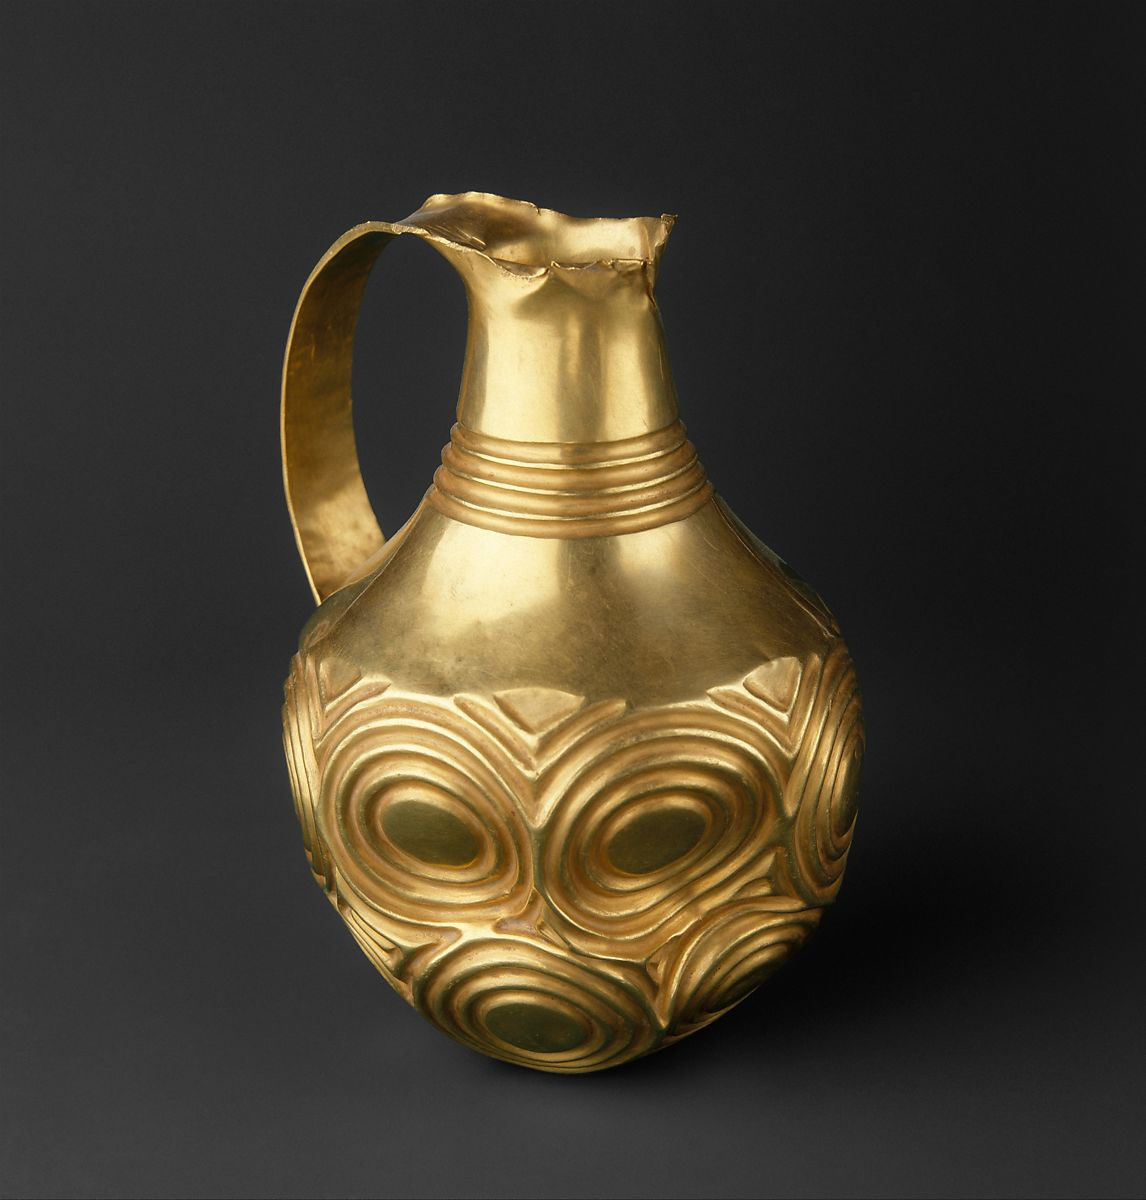 Ewer decorated with concentric circles | Hattian | Early Bronze Age II-III | The Met